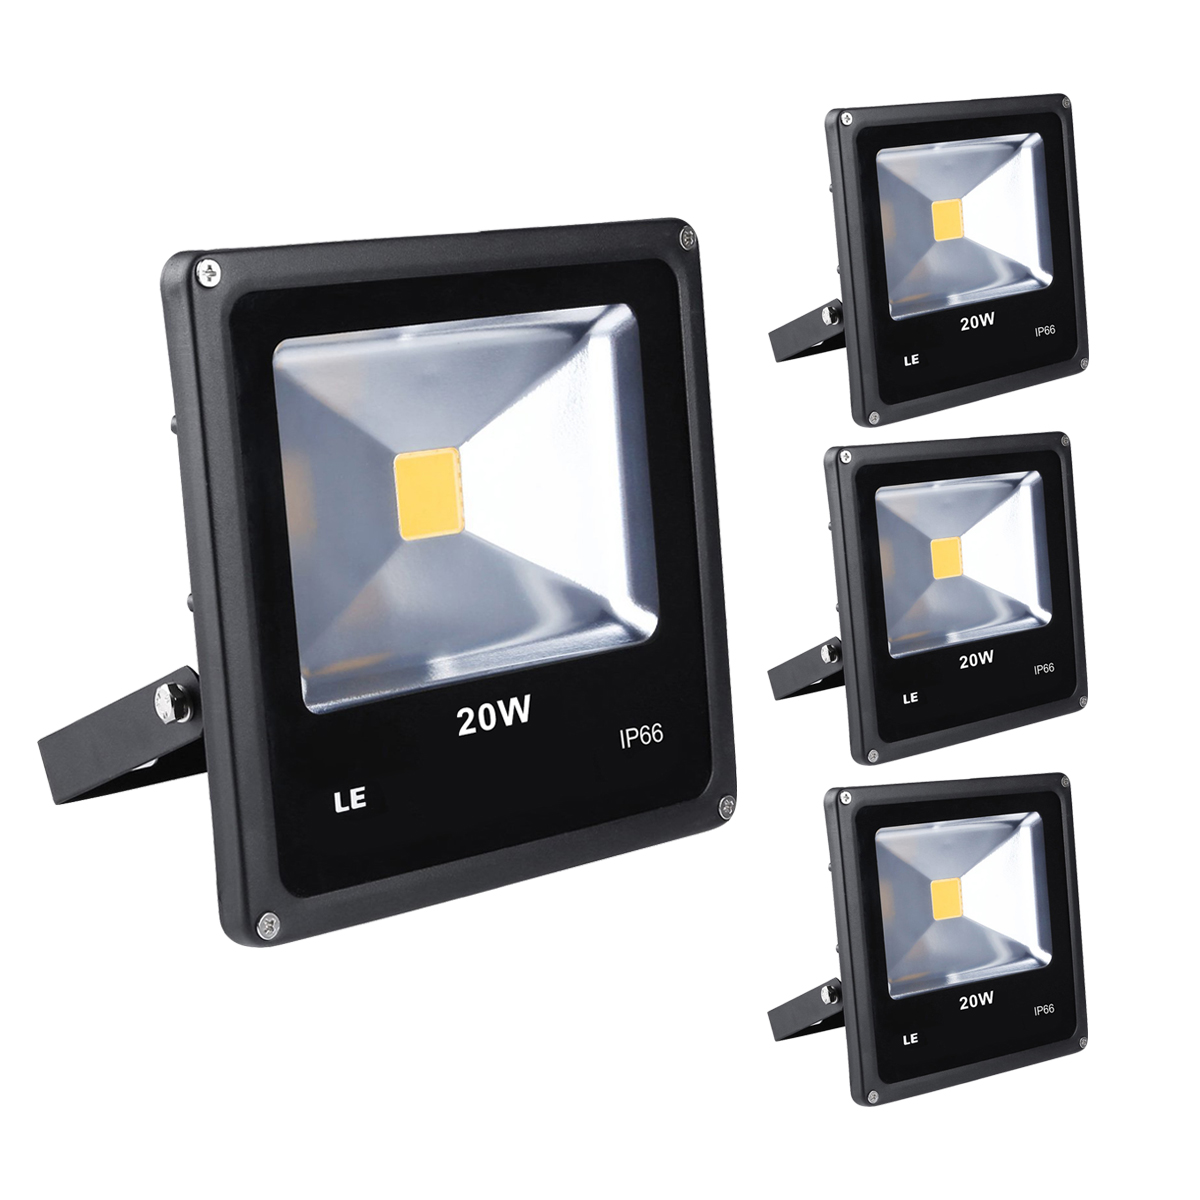 Lighting Ever Top Quality Led Fixtures Waterproof 20w Outdoor Led Flood Light Daylight White